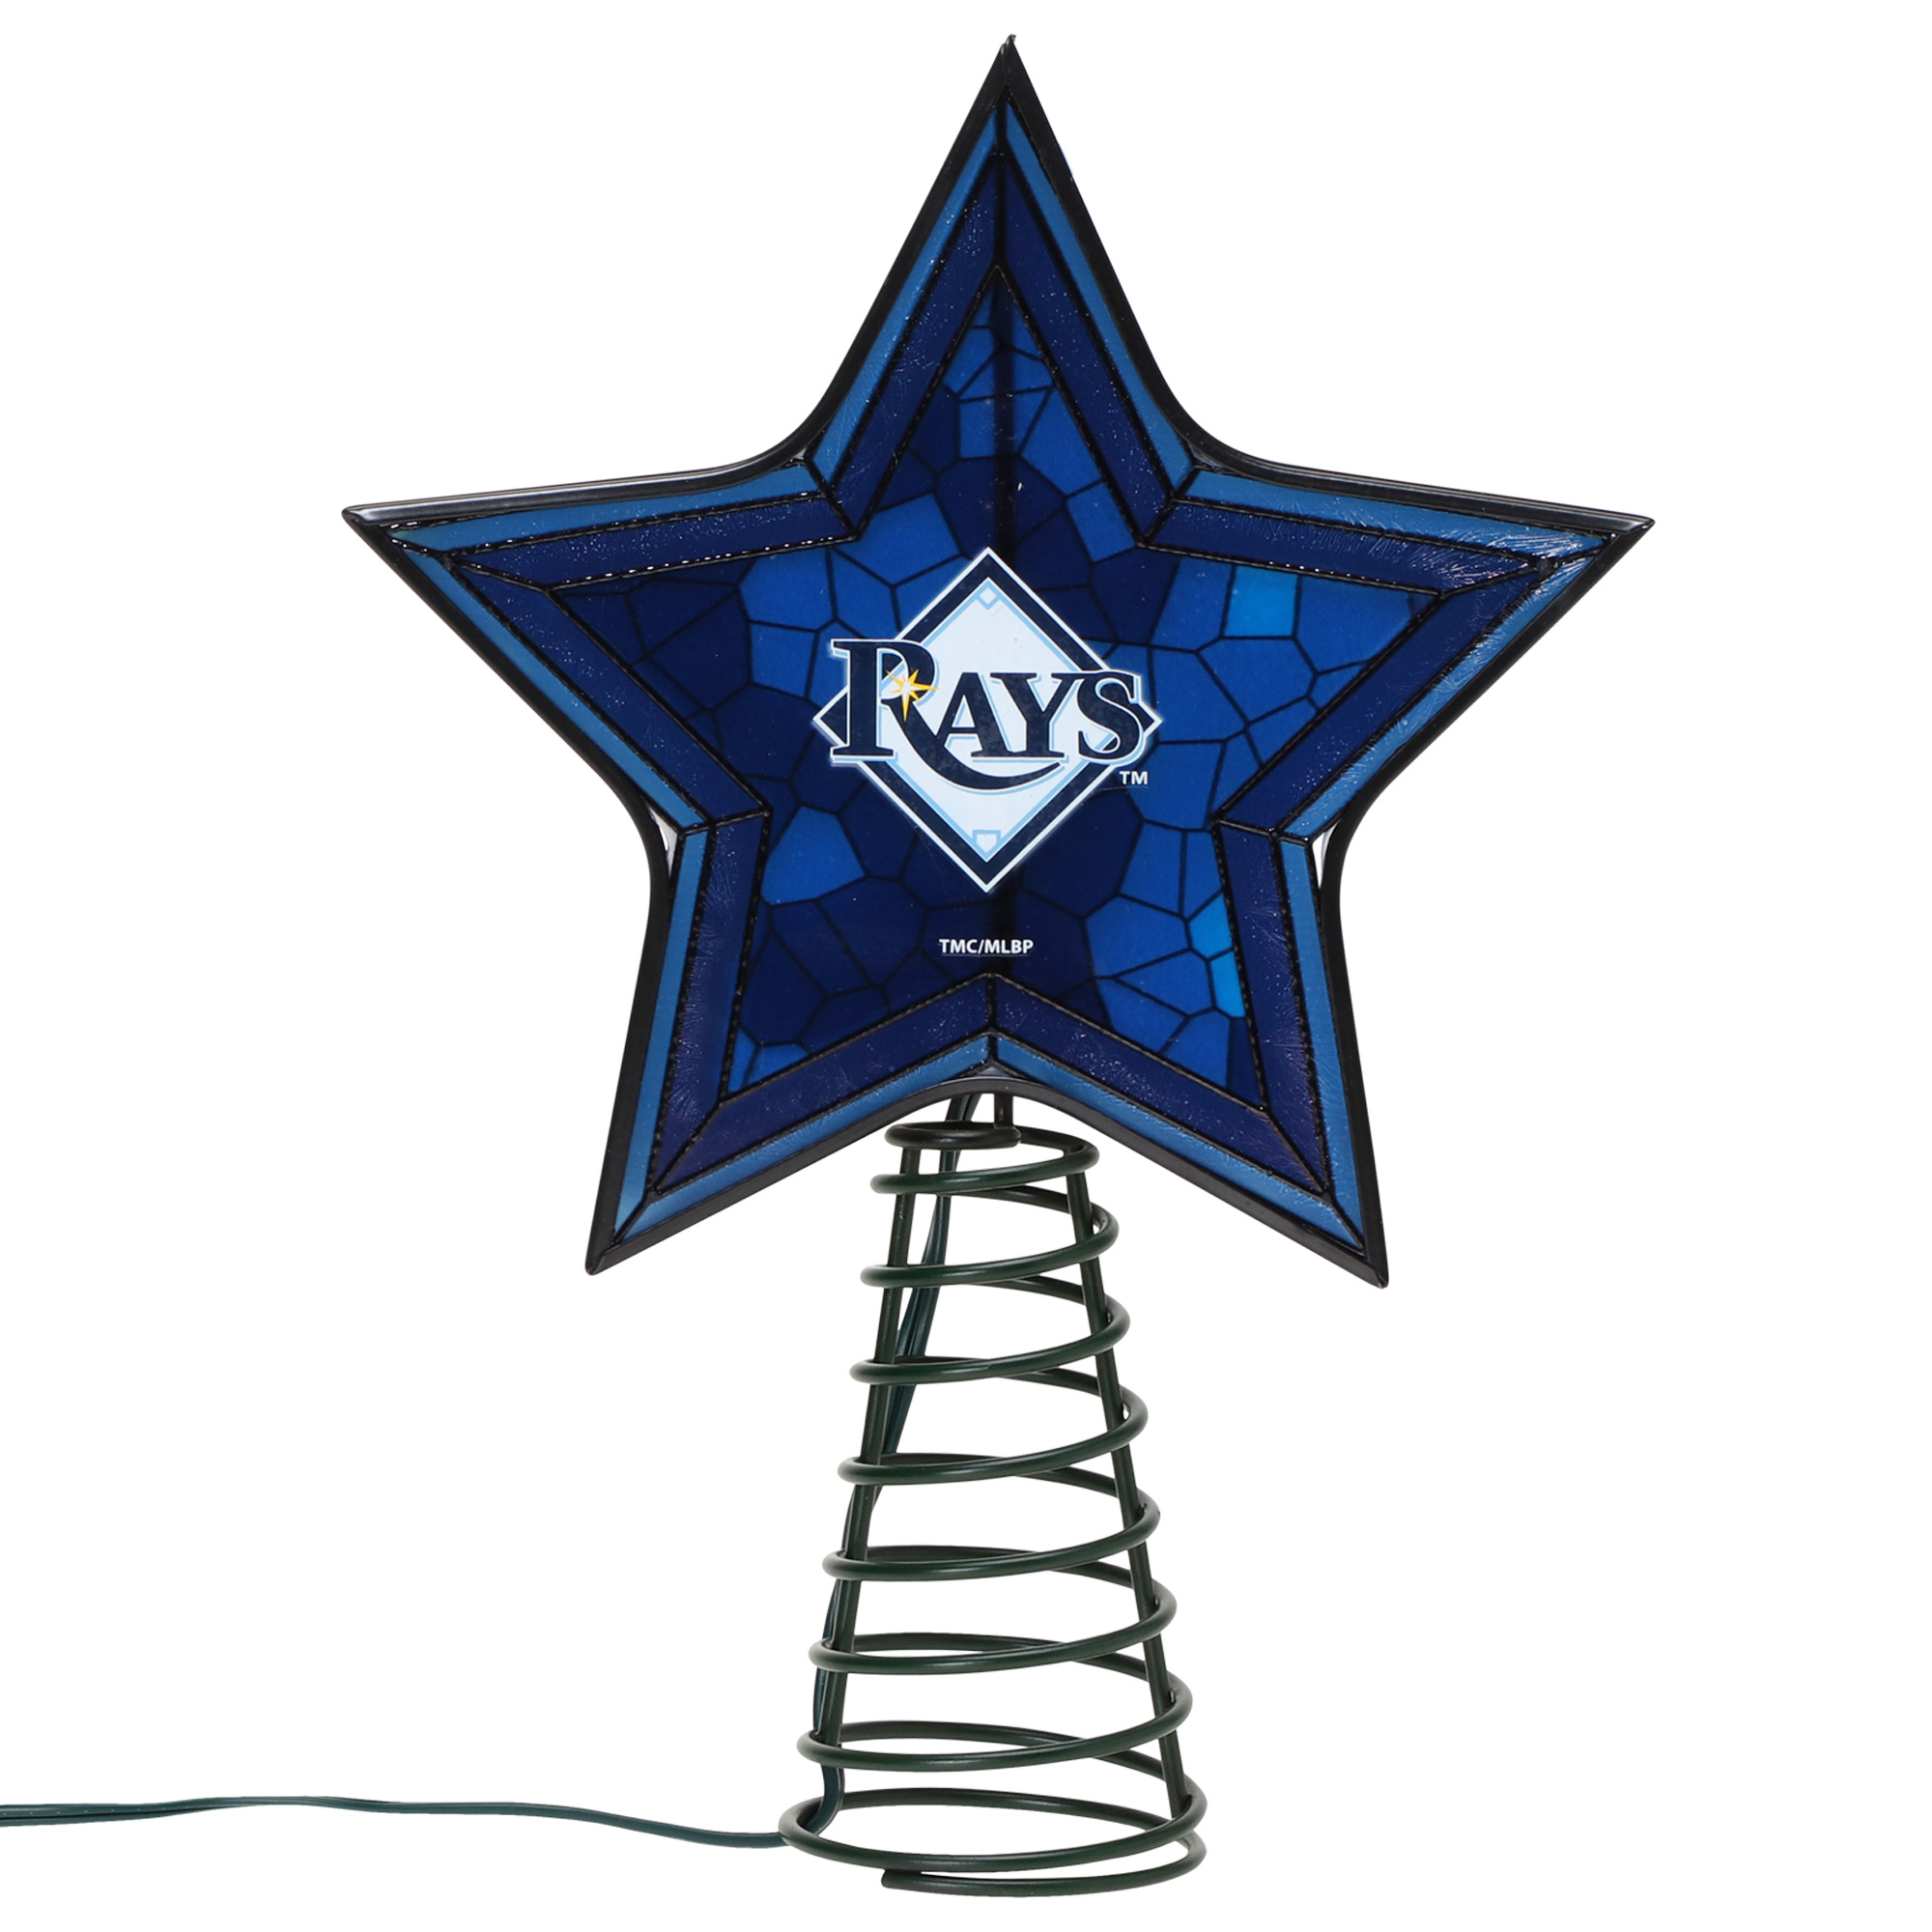 Tampa Bay Rays Mosaic Tree Topper - No Size